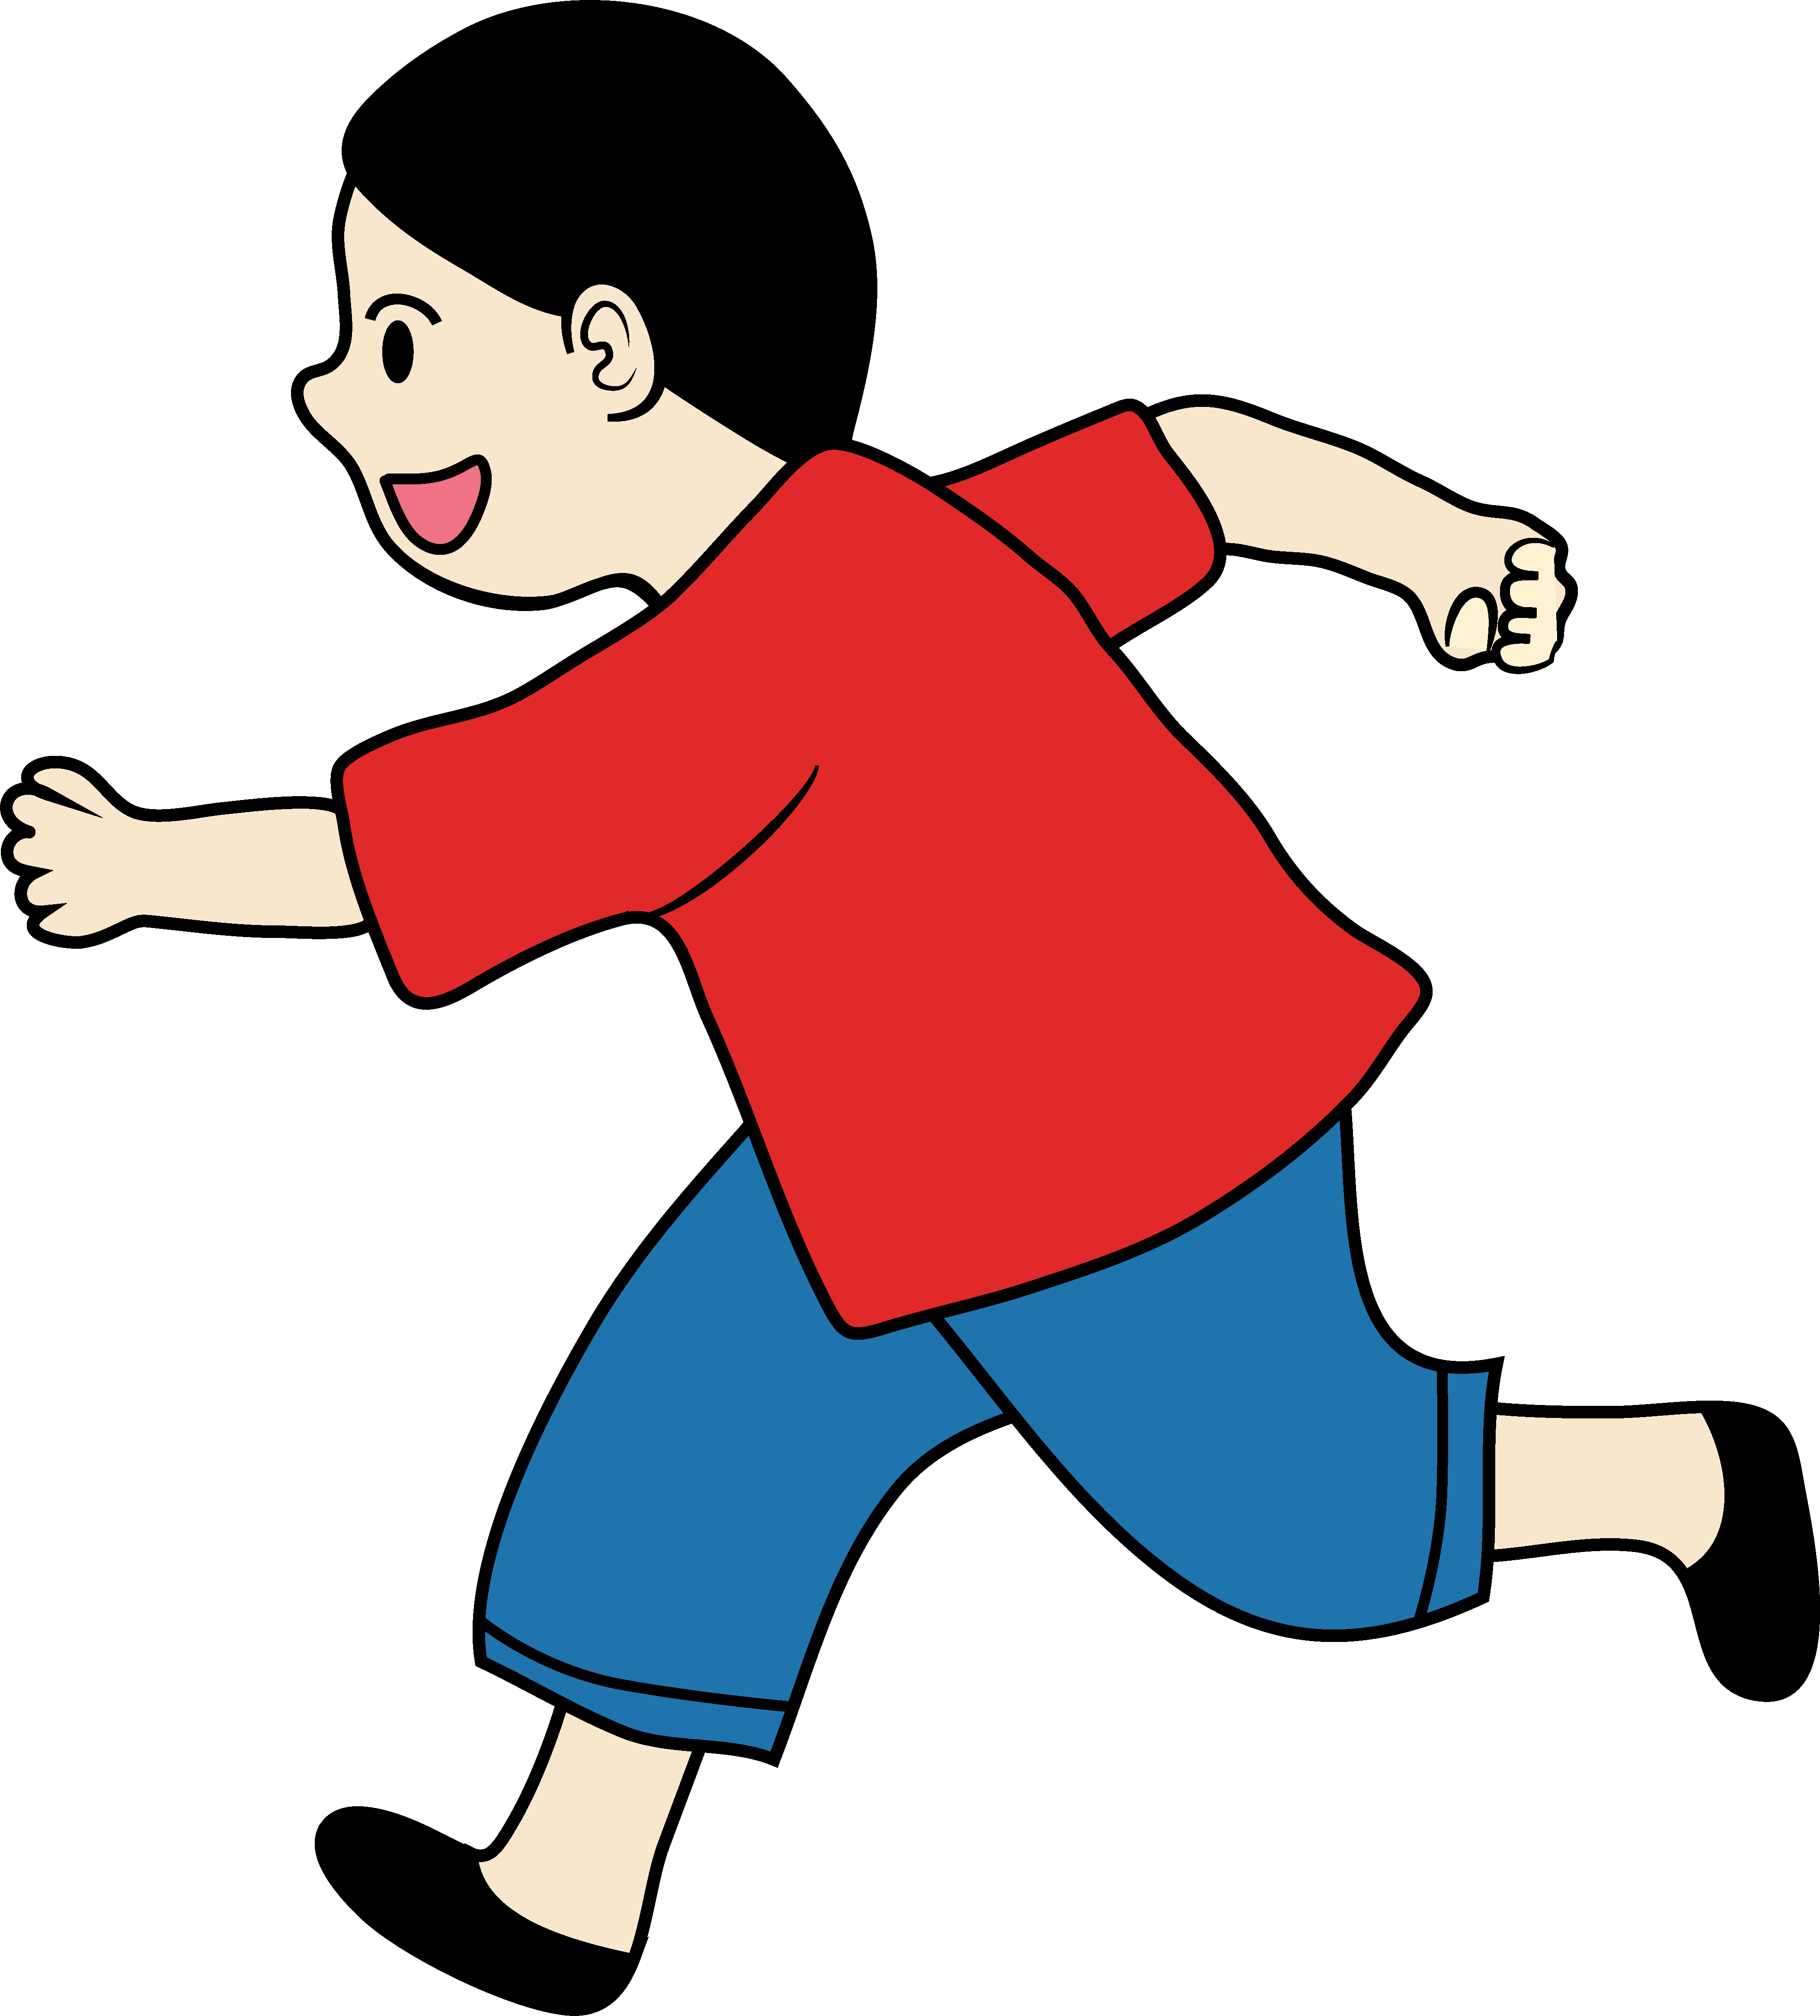 Boy run clipart picture stock Clipart of a Little Boy Running - Free Clip Art picture stock